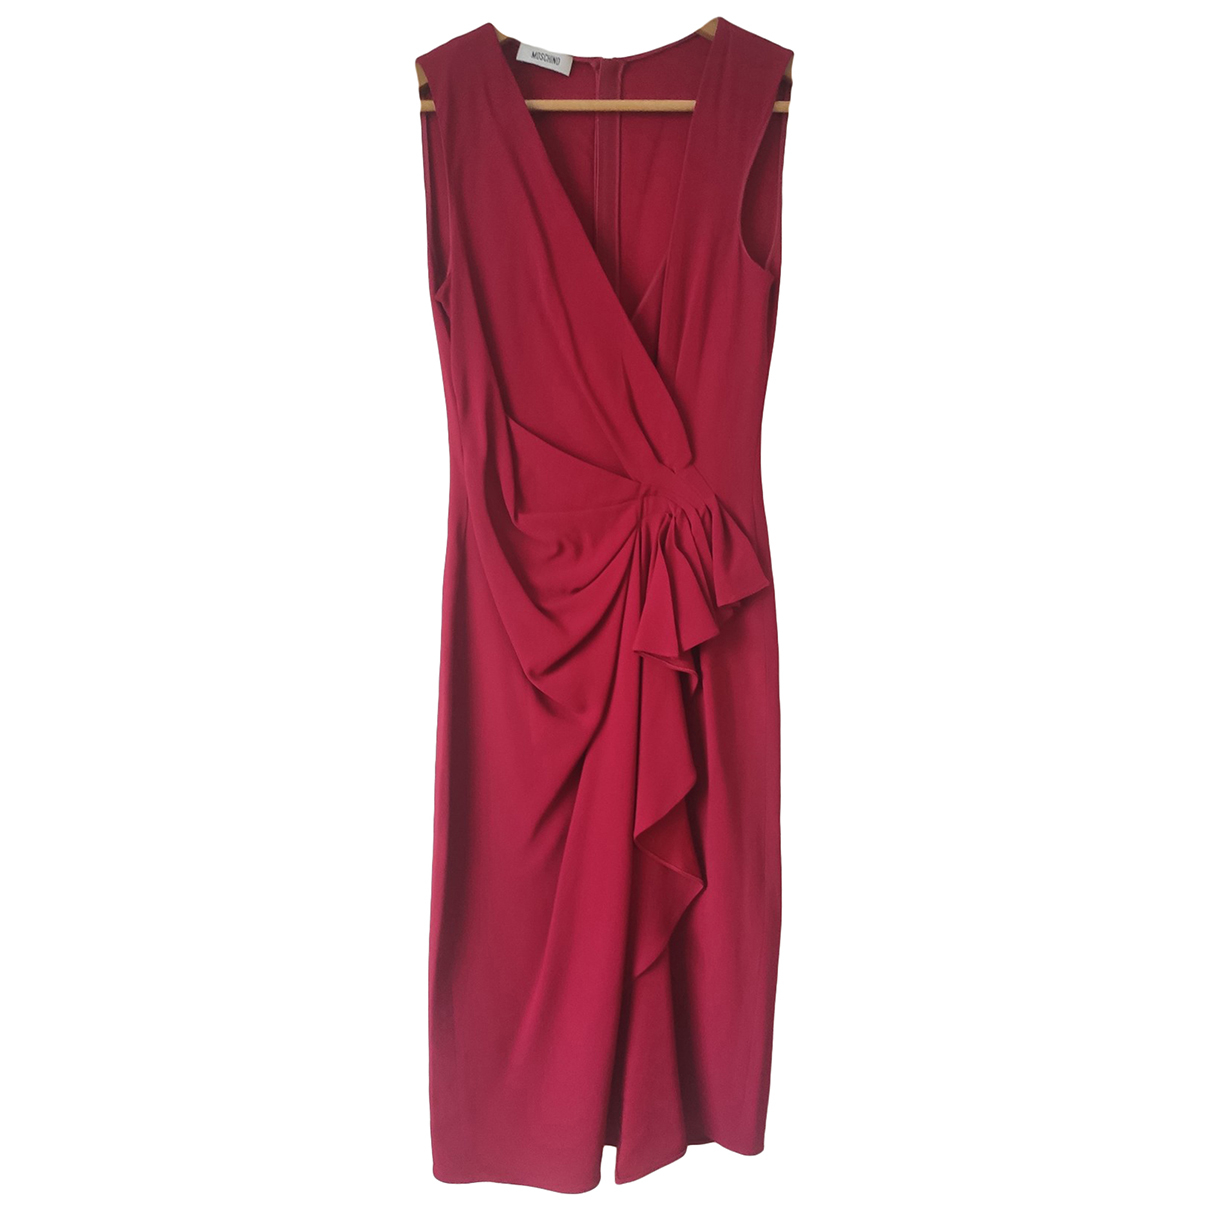 Moschino \N Kleid in  Rot Synthetik